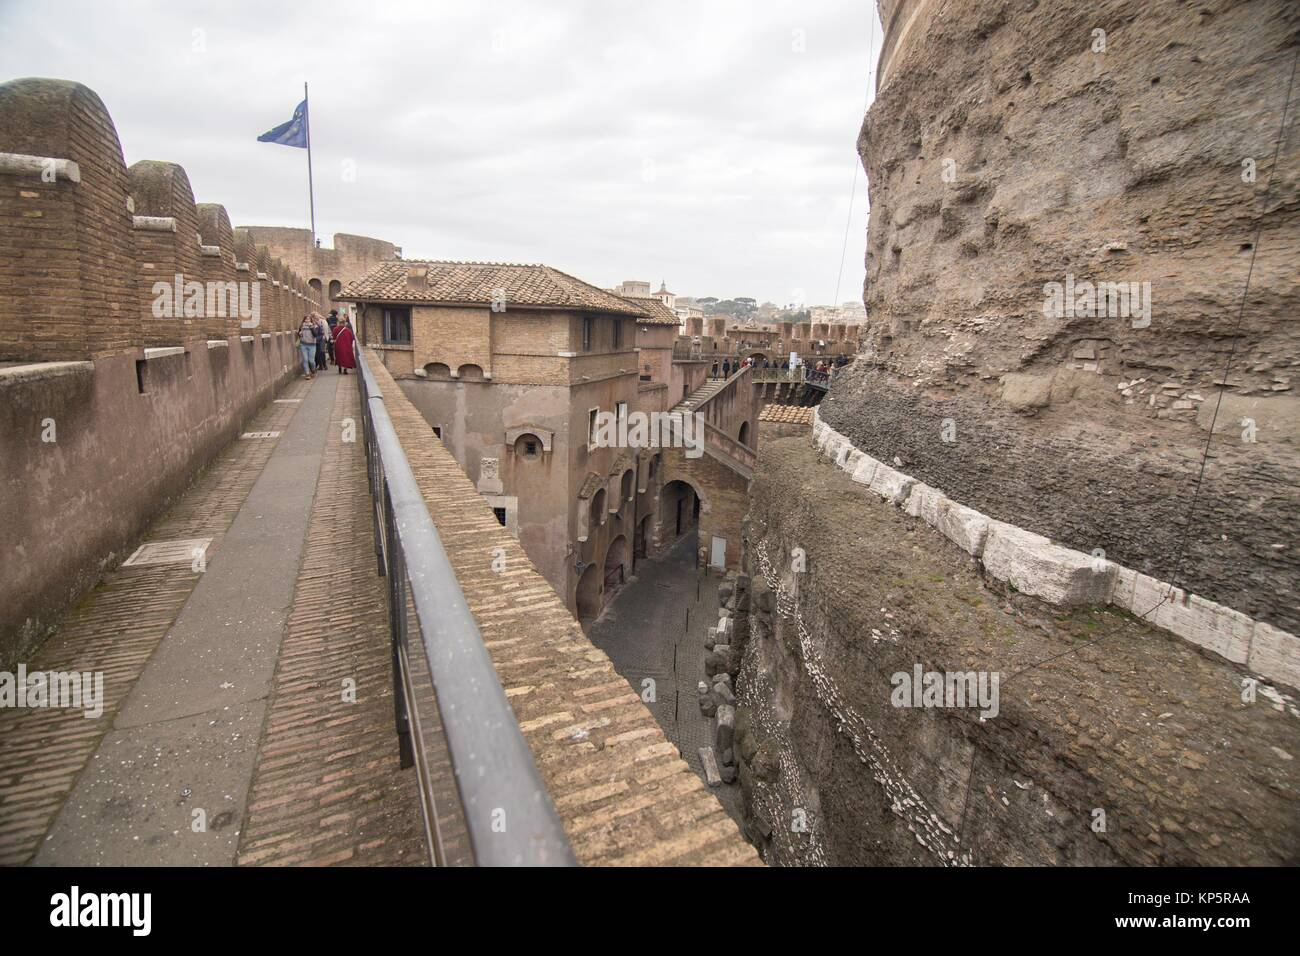 Castle Sant' Angelo in Rome, on February 5, 2017 in Italy. - Stock Image